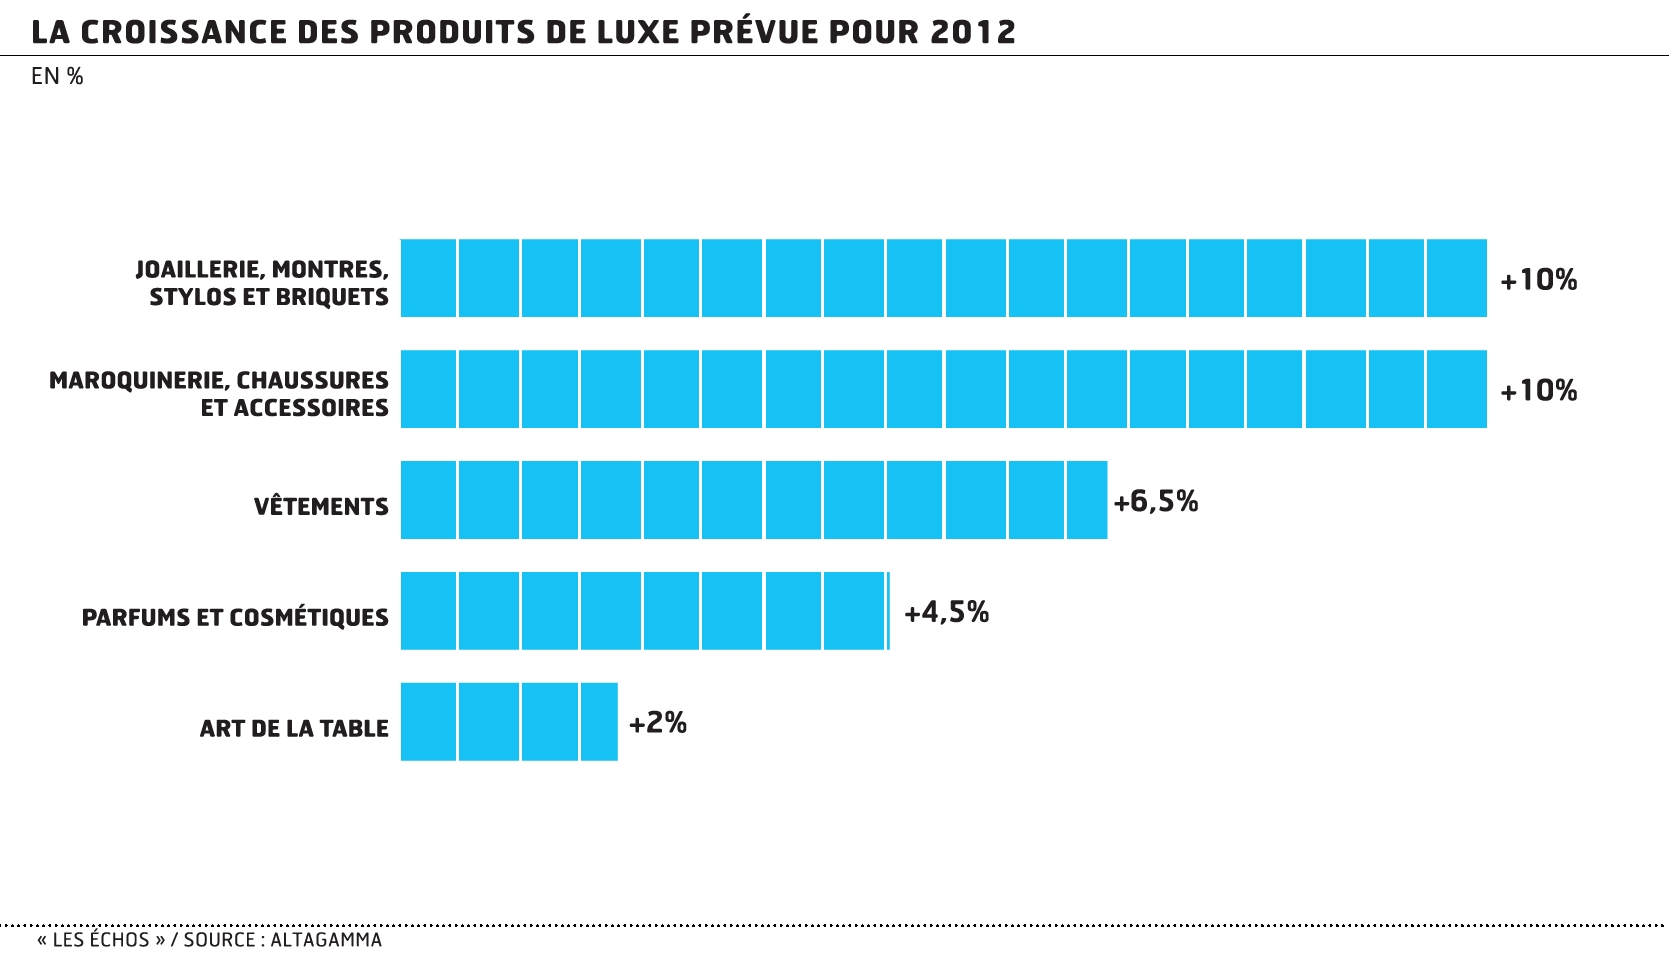 lvmh in the recession Lvmh: king of the luxury jungle september 2009  pressured, as the recession prompts trade-down and higher promotion intensity retail de-stocking is likely to exacerbate this trend in fy 2009 we expect more profitable growth in watches & jewelry as well as in.